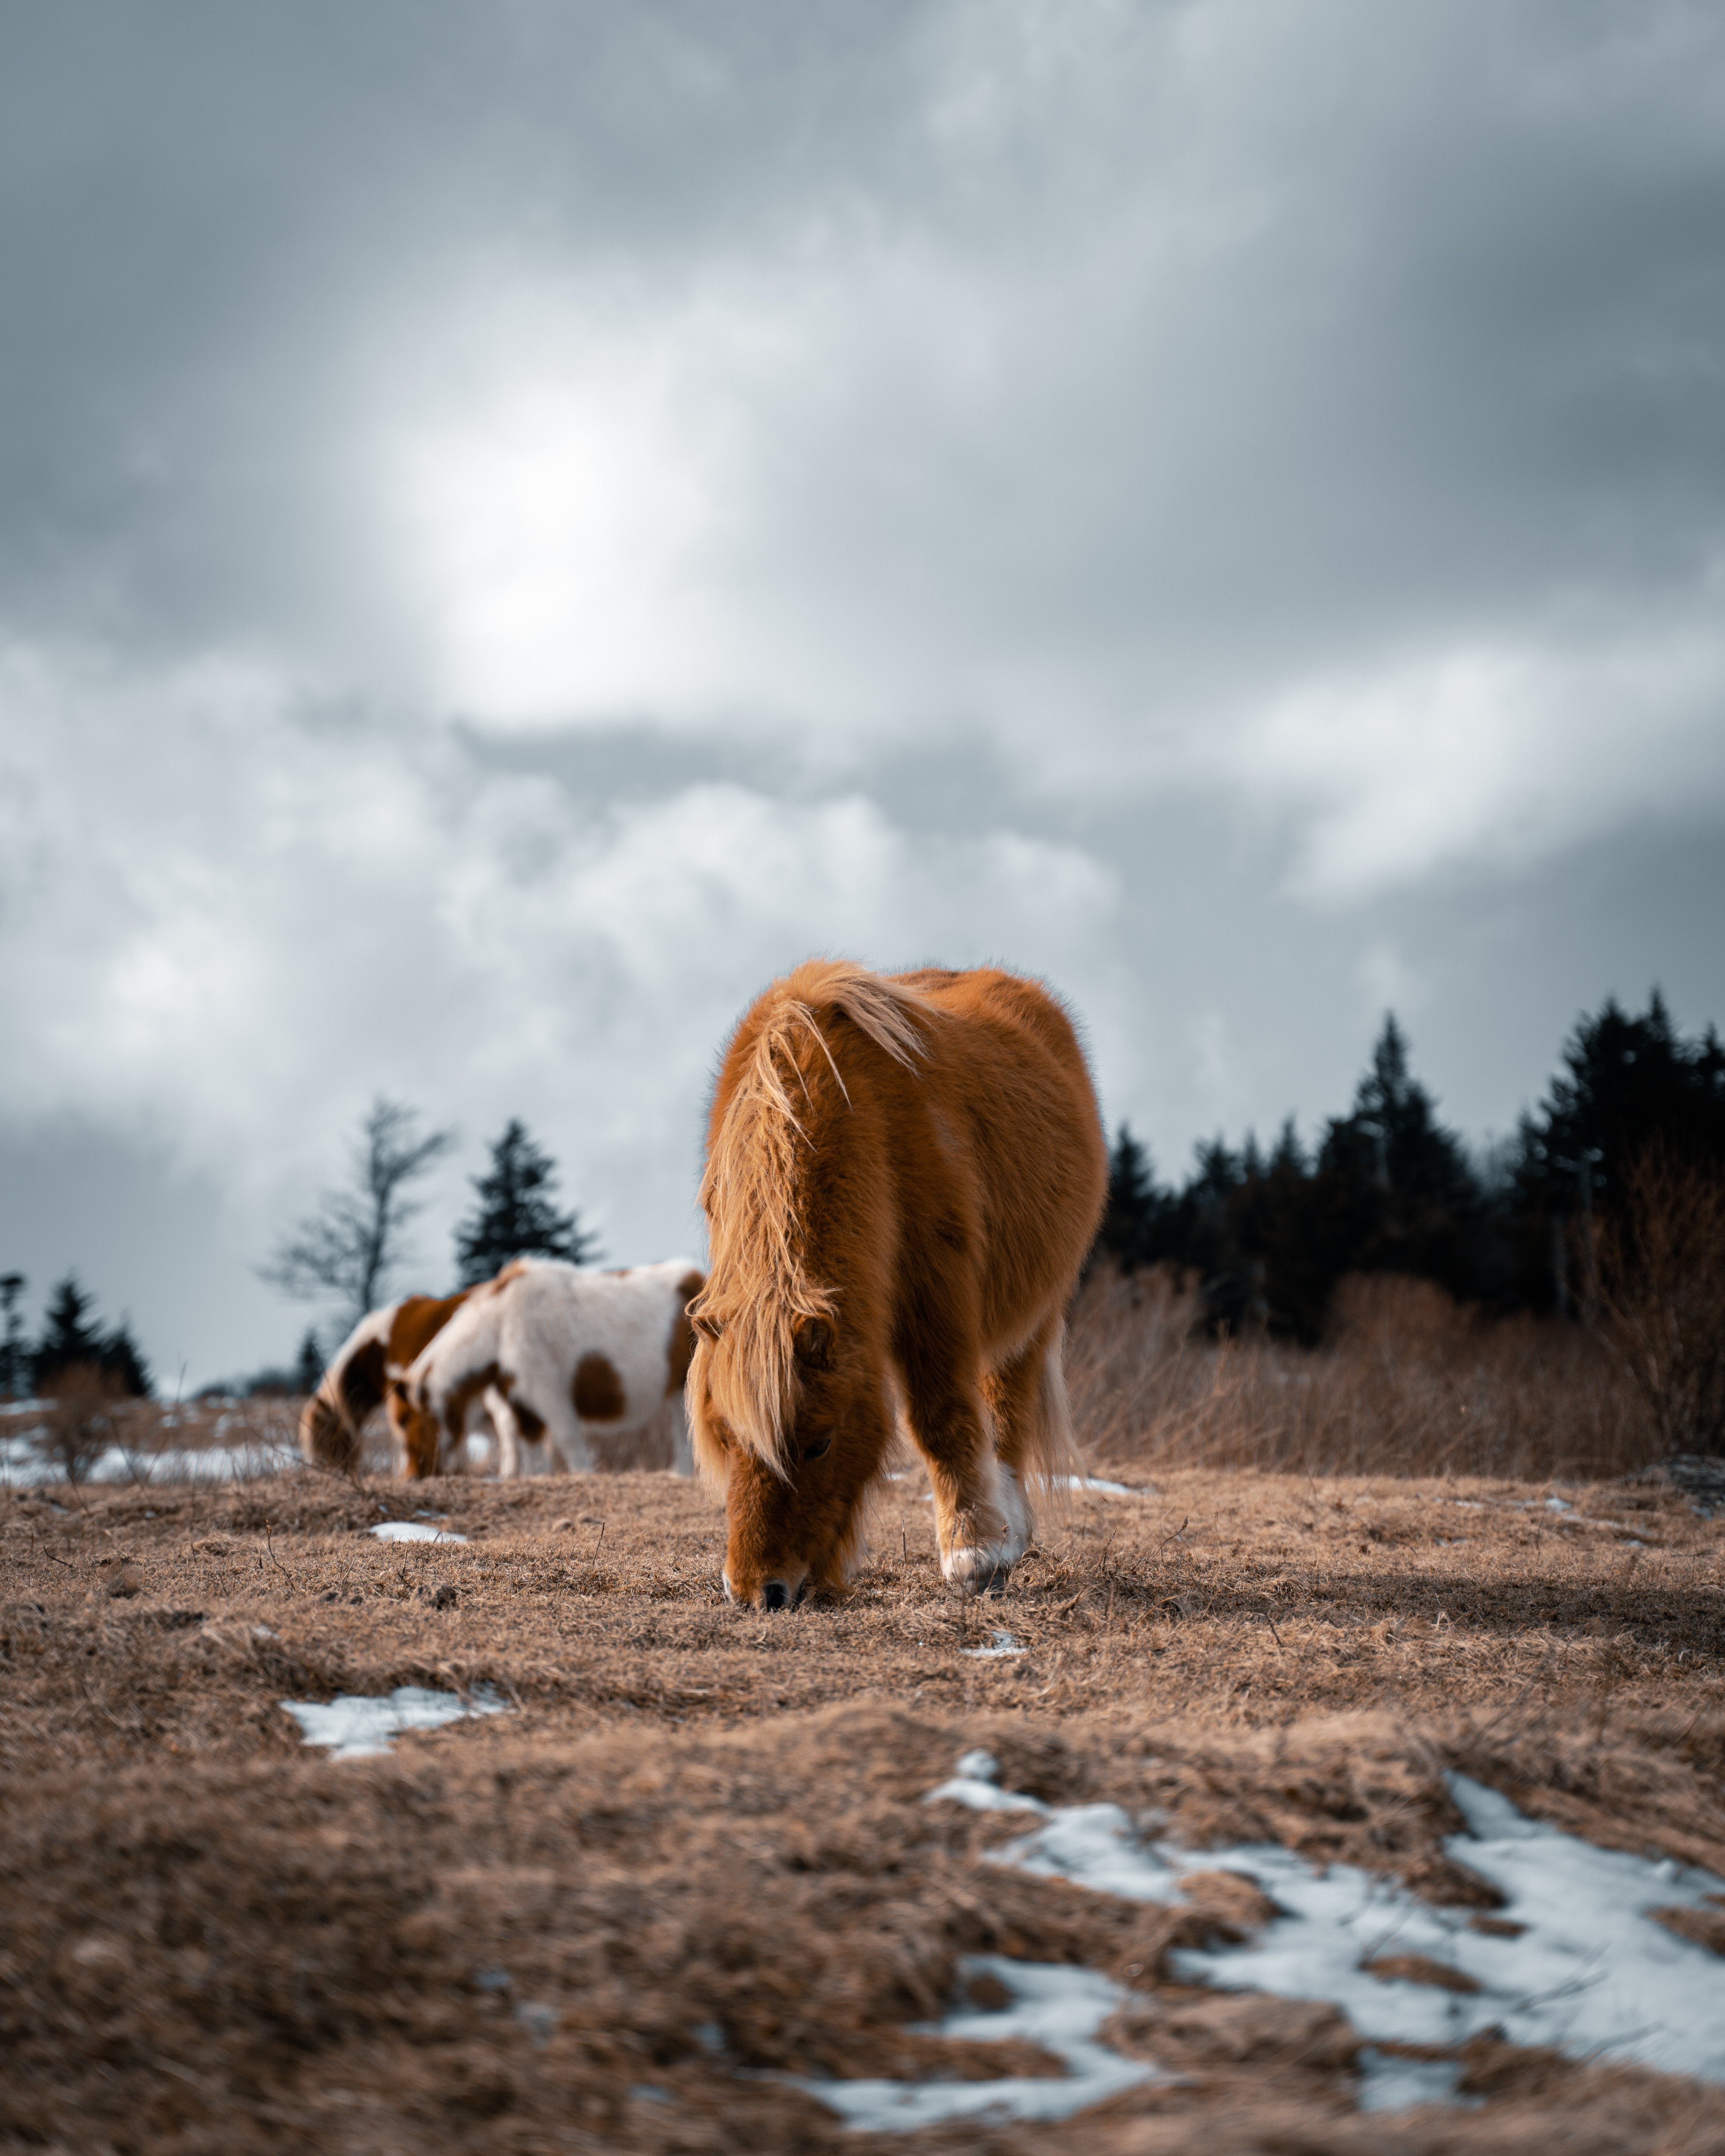 136668 download wallpaper Animals, Icelandic Horse, Horse, Pony, Fluffy, Animal screensavers and pictures for free